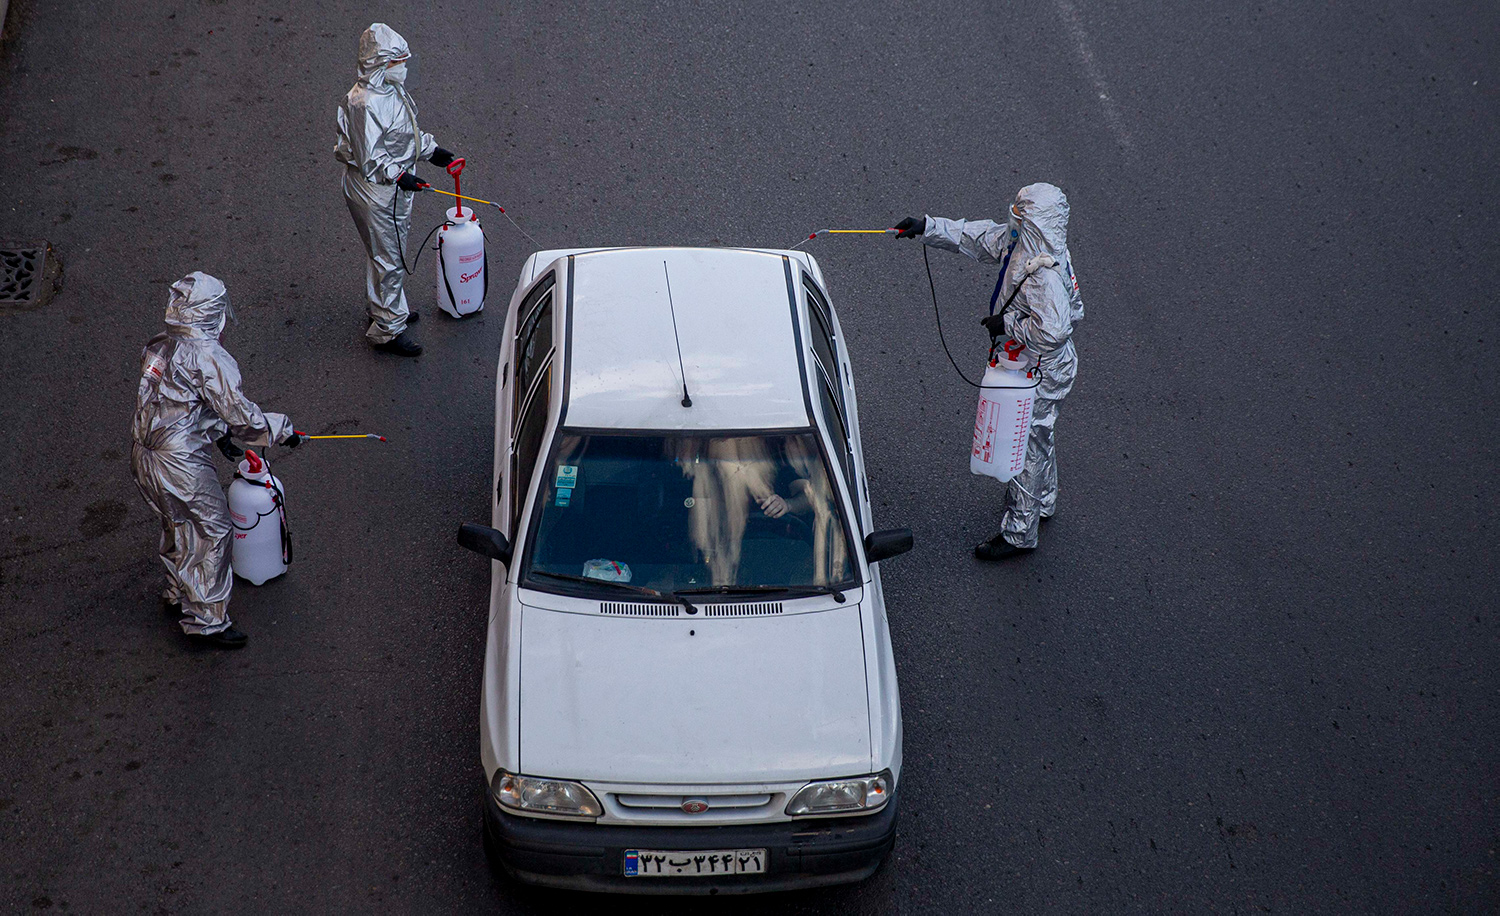 Volunteers spraying disinfectant on a car during the coronavirus pandemic on March 31, 2020 in Tehran. Majid Saeedi/Getty Images.